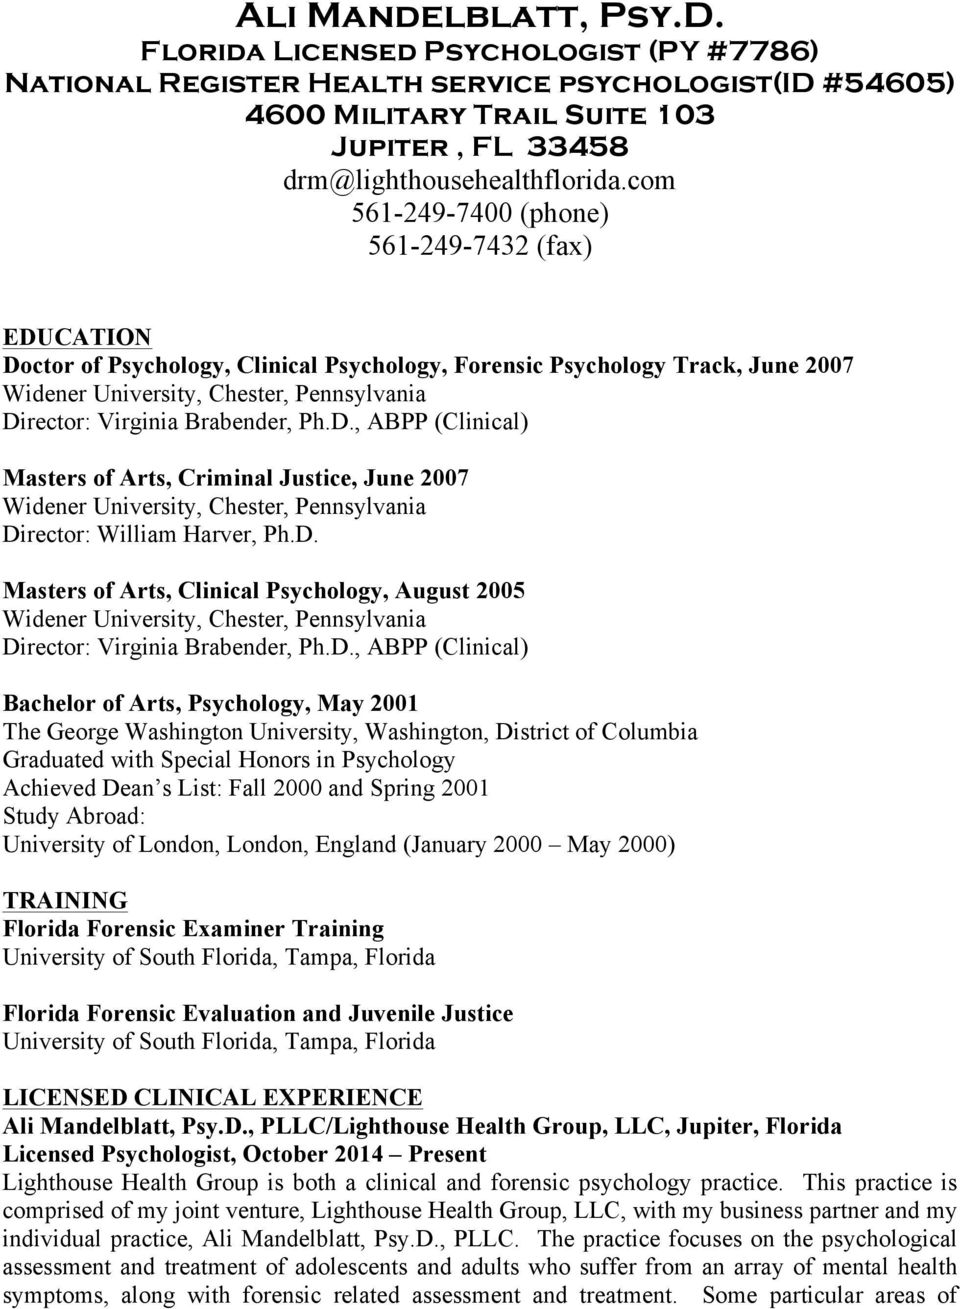 D. Masters of Arts, Clinical Psychology, August 2005 Director: Virginia Brabender, Ph.D., ABPP (Clinical) Bachelor of Arts, Psychology, May 2001 The George Washington University, Washington, District